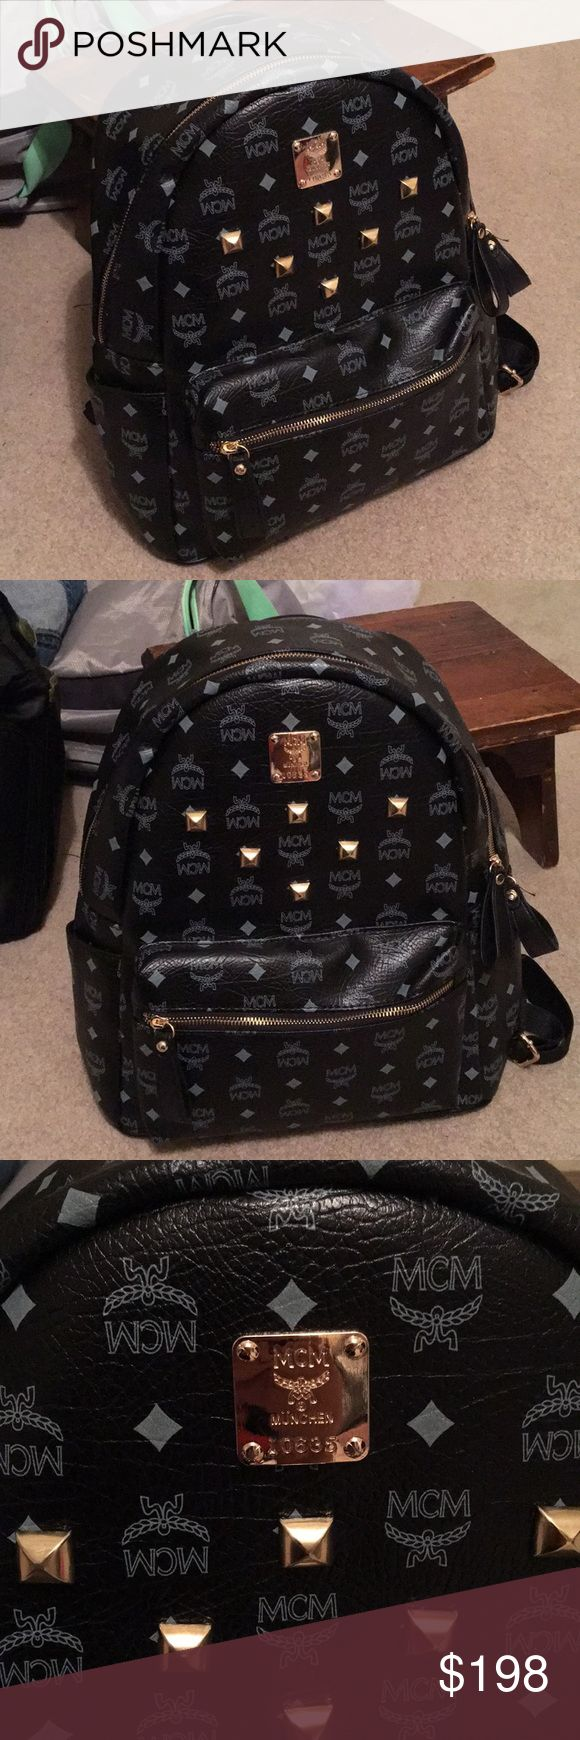 MCM Backpack Used a few tim a but in good condition. No flaws. Will negotiate. MCM Bags Backpacks